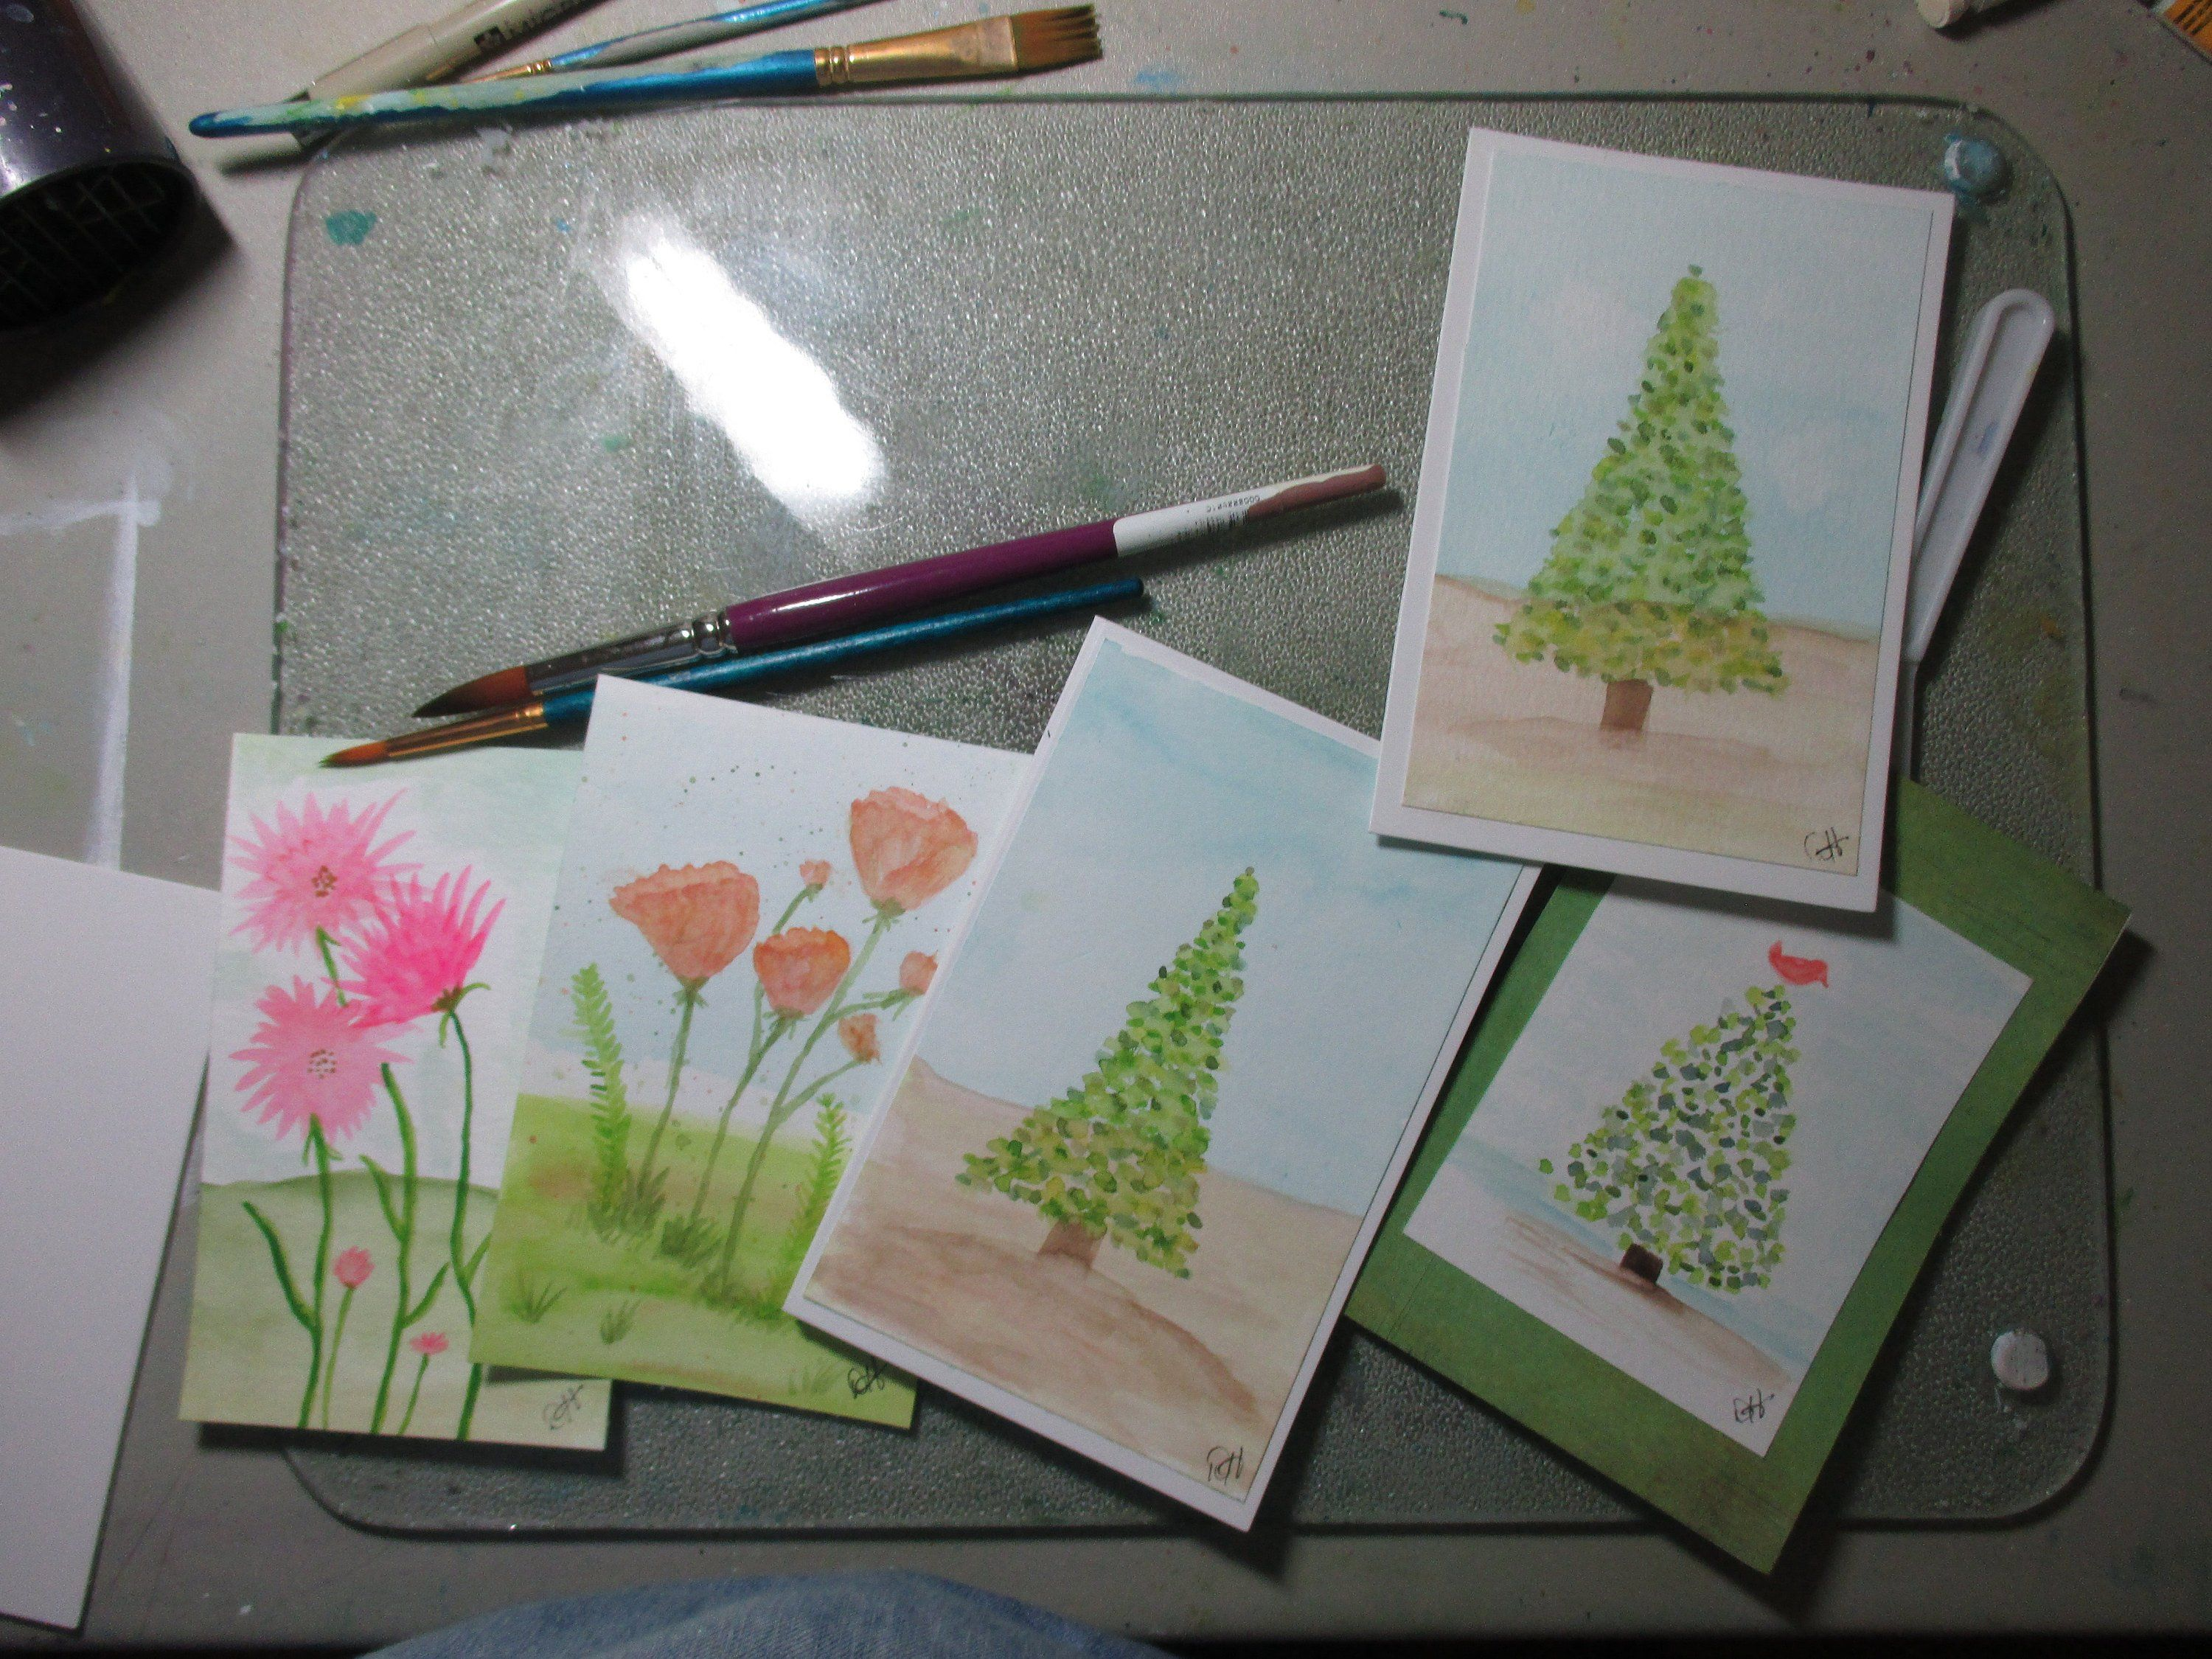 Still Painting Greeting Cards For The Craft Sell Christmas Shopsmall Watercolors Check Out My Shops During Cyber Week Gifts And Decorations